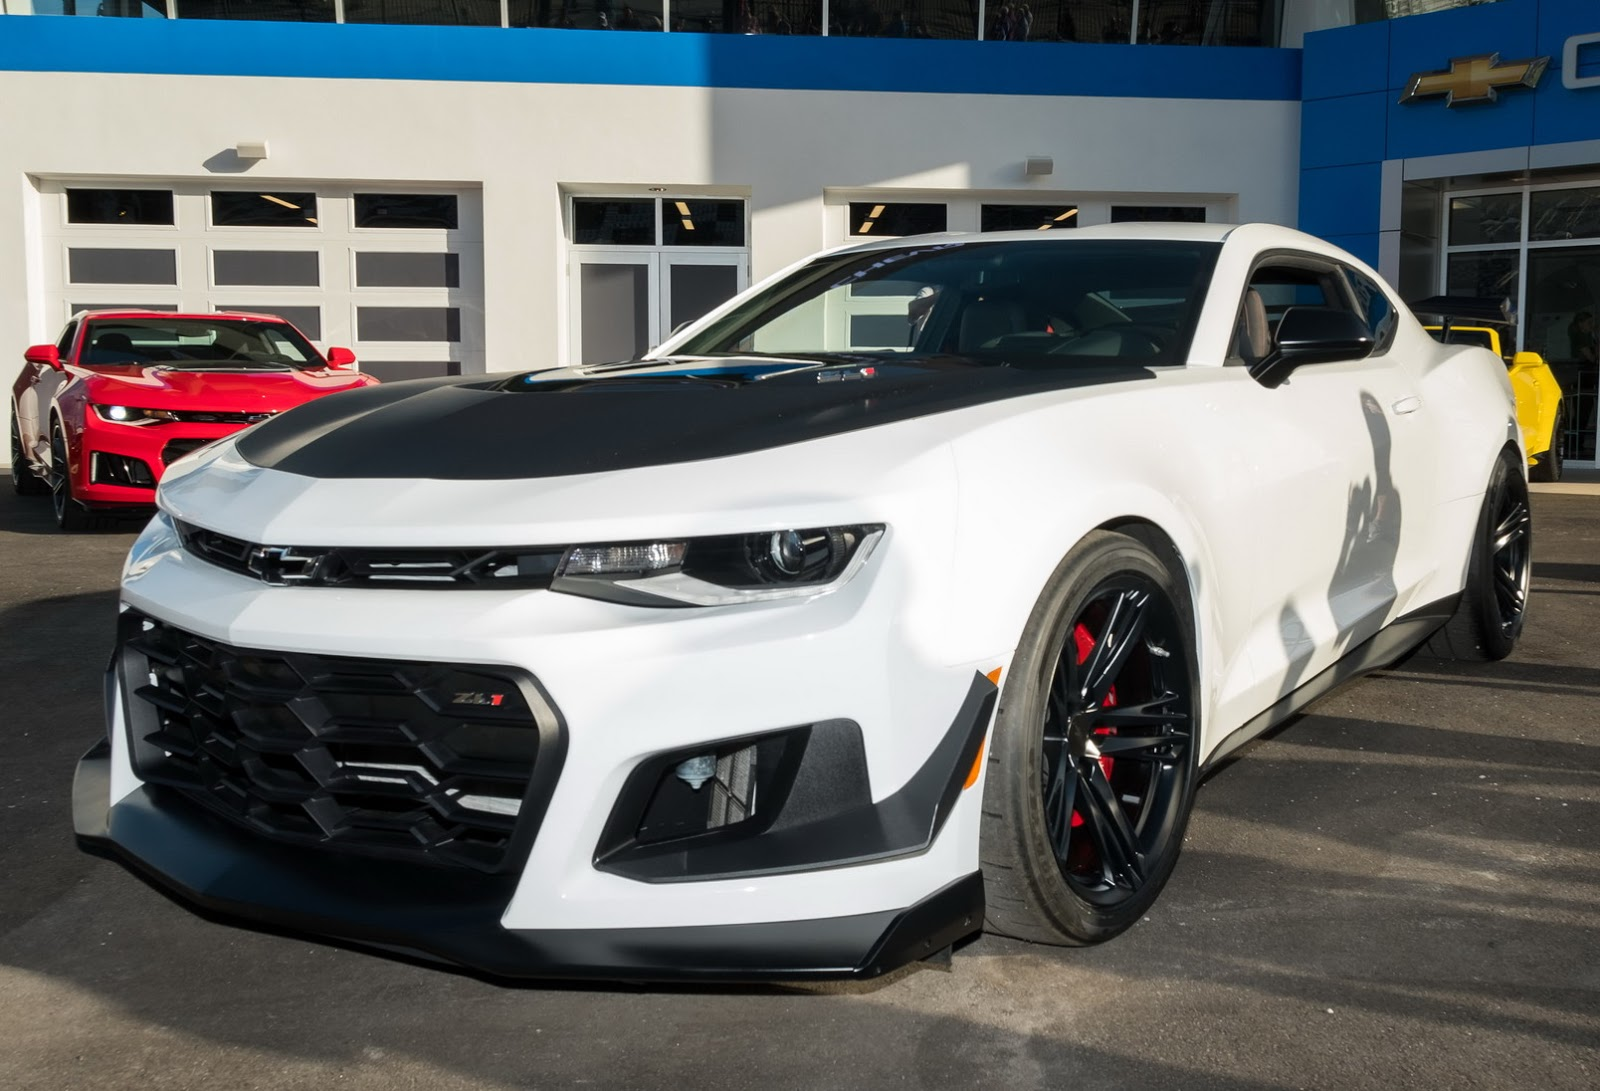 2018 Chevrolet Camaro ZL1 1LE Priced From $69,995, Goes On